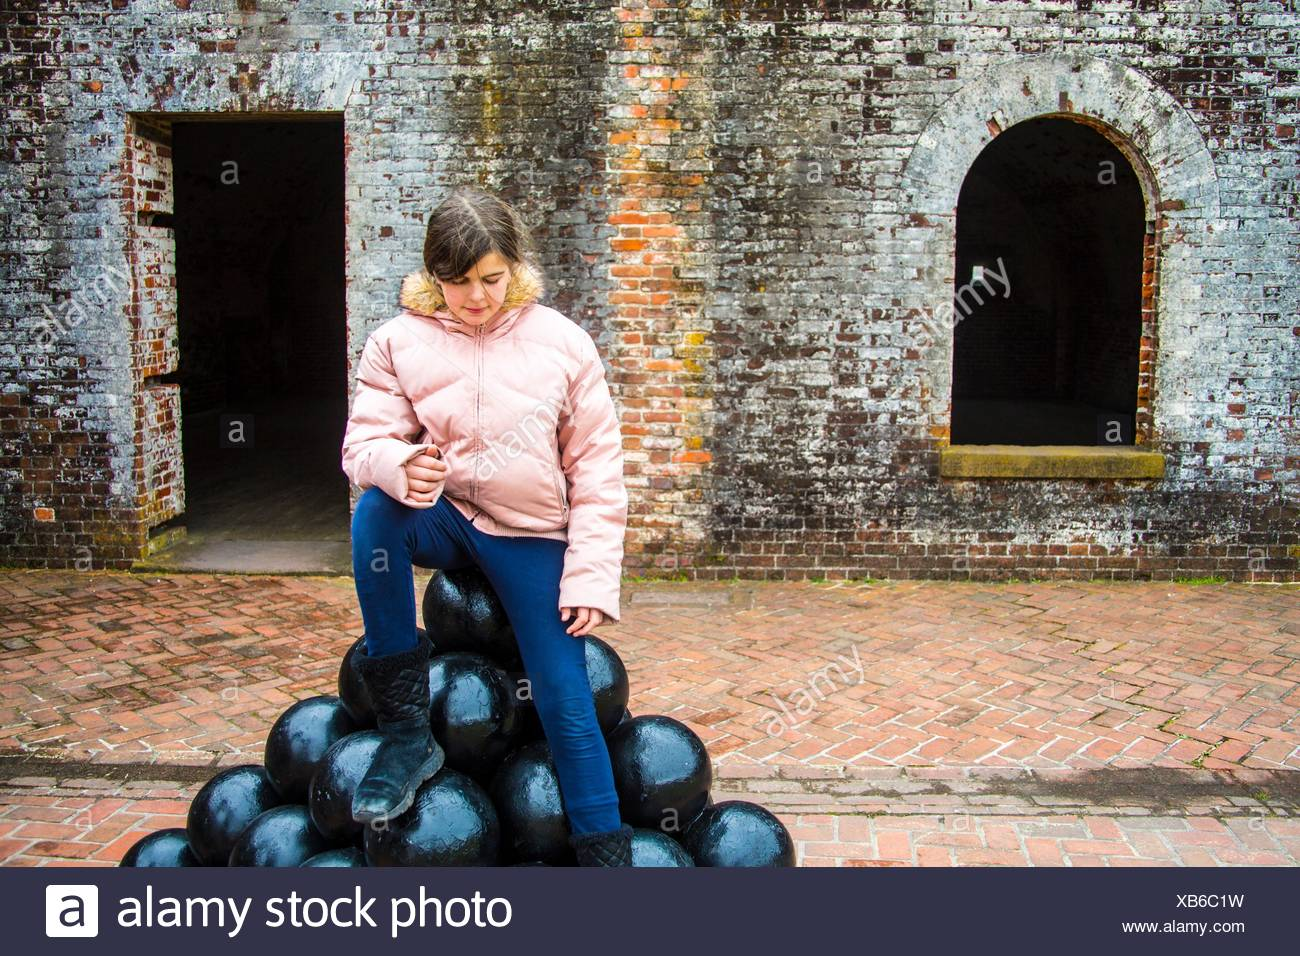 beautiful preteen caucasian girl sitting on a pyramid pile of canon balls in an old fort. She is dress warmly and look thoughtful. - Stock Image